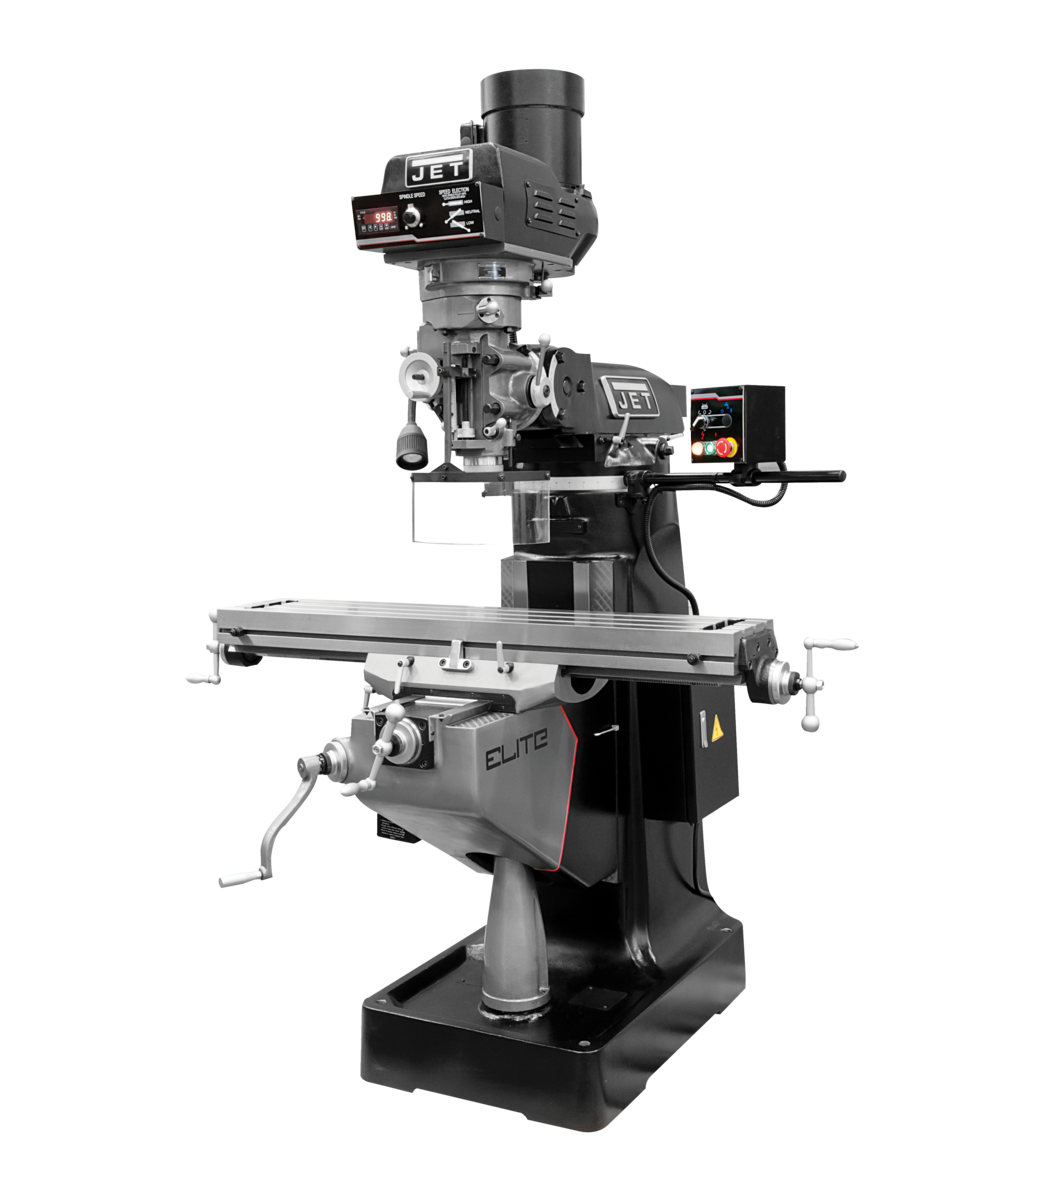 EVS-949 Mill with 3-Axis ACU-RITE 303 (Quill) DRO and X, Y-Axis JET Powerfeeds